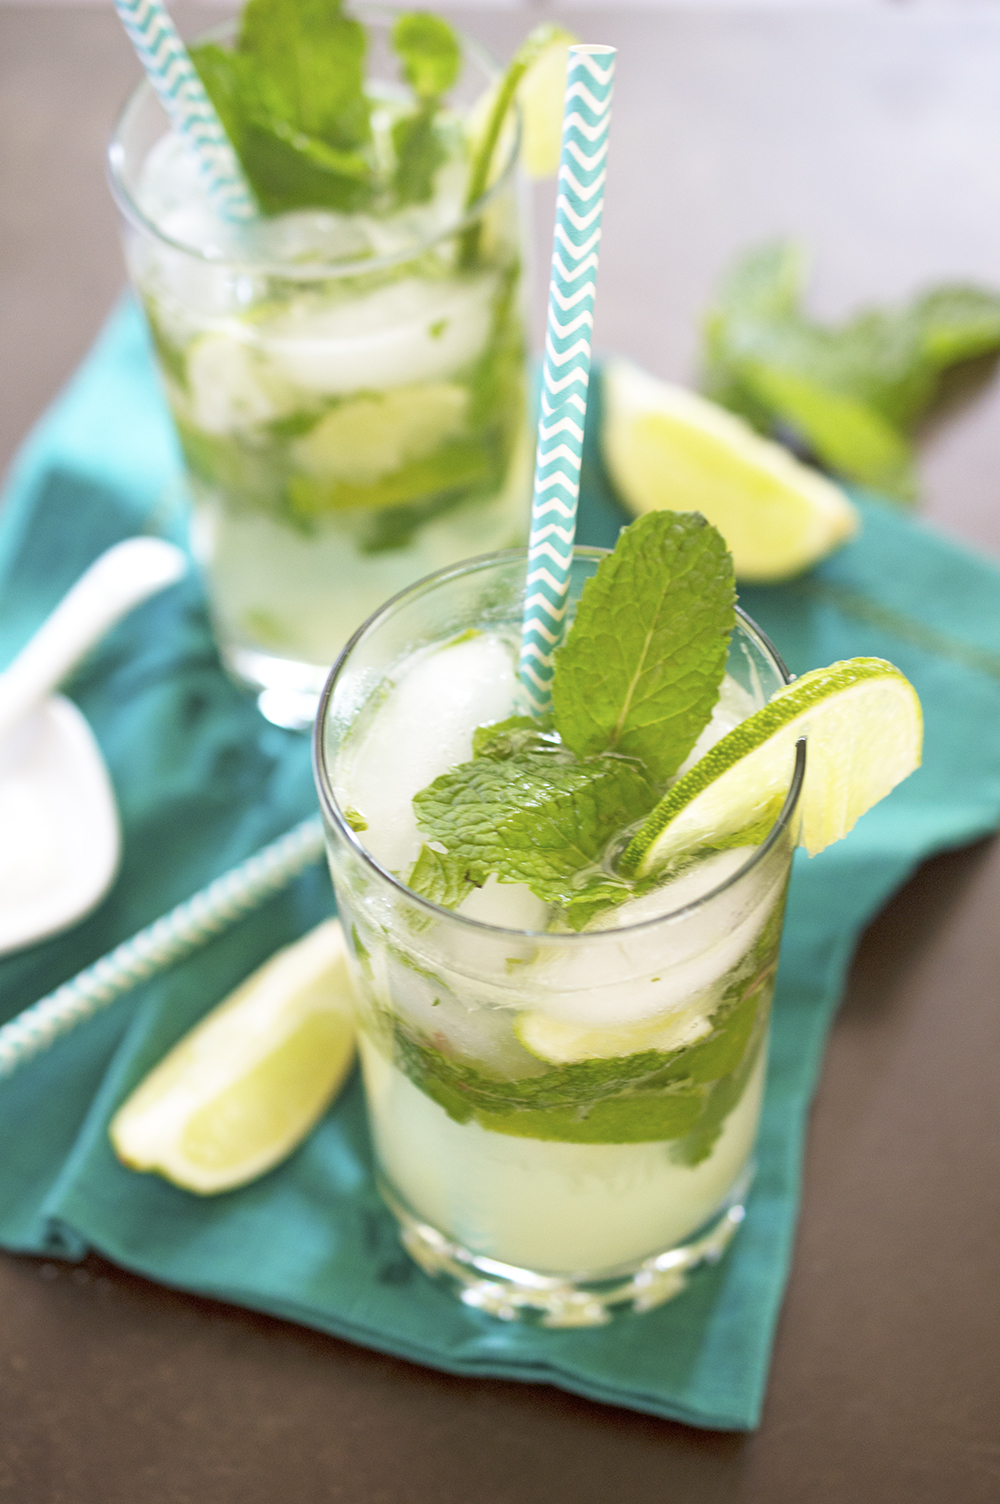 How To Make The Best Mint Mojito 5 Ingredients Chef Savvy